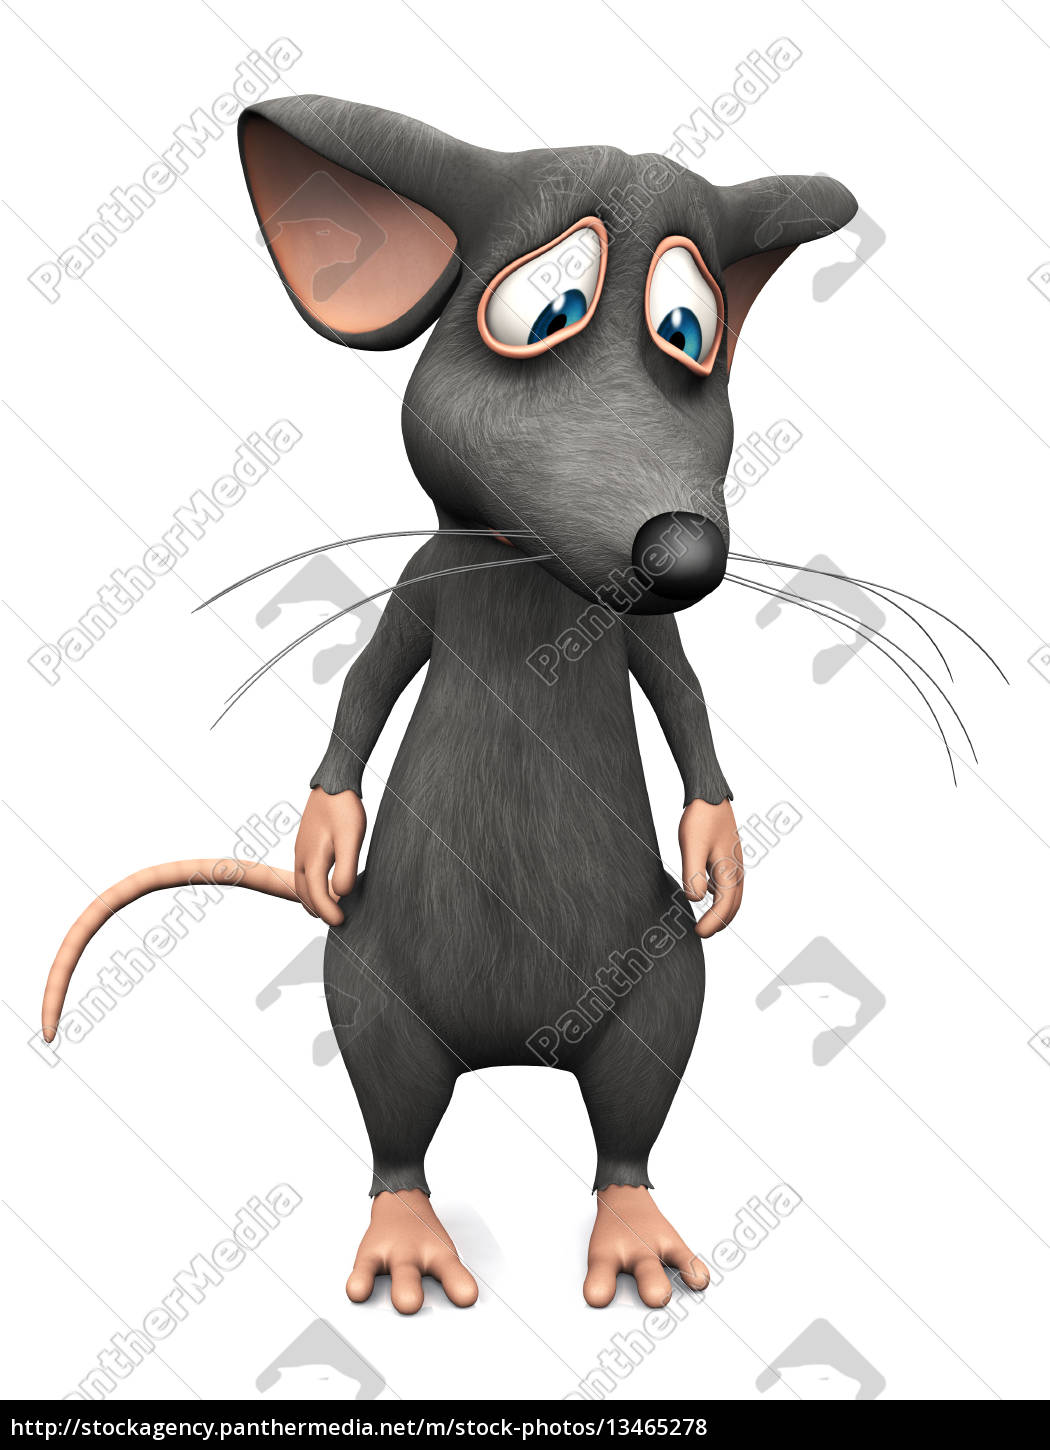 Royalty Free Image 13465278 Cartoon Mouse Looking Very Sad